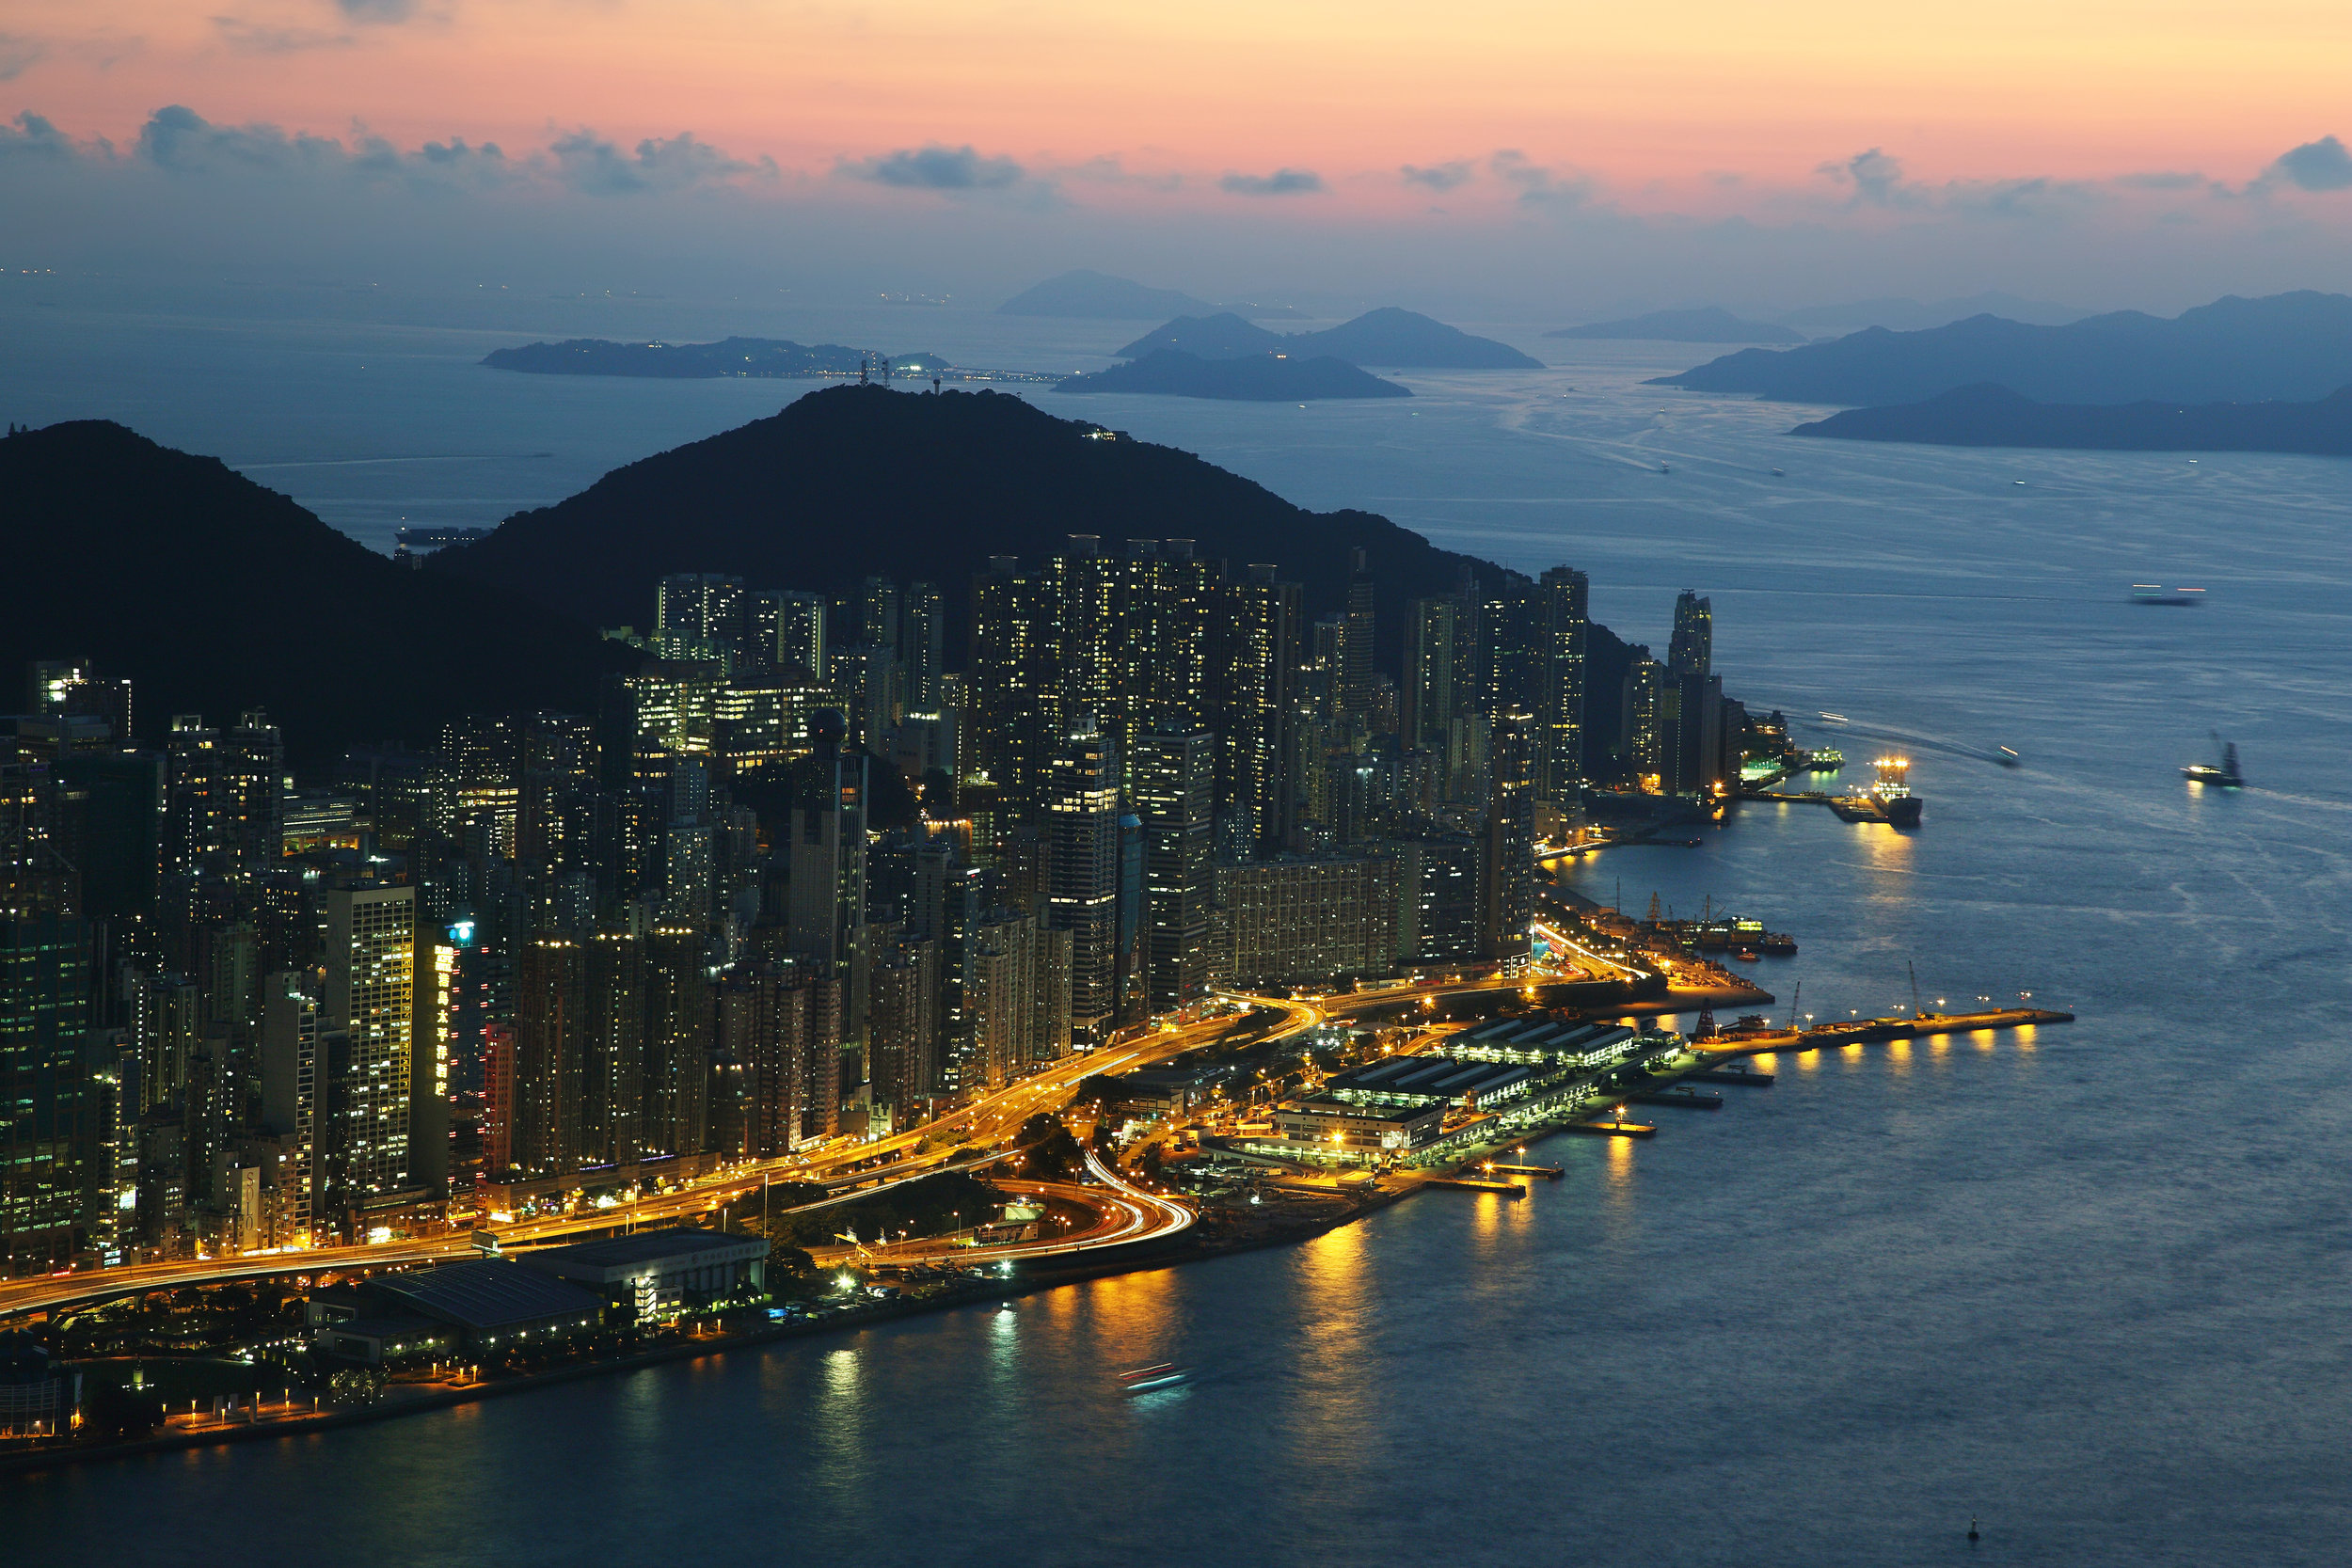 hong-kong-island-skyline-at-night-B5PH7RA.jpg